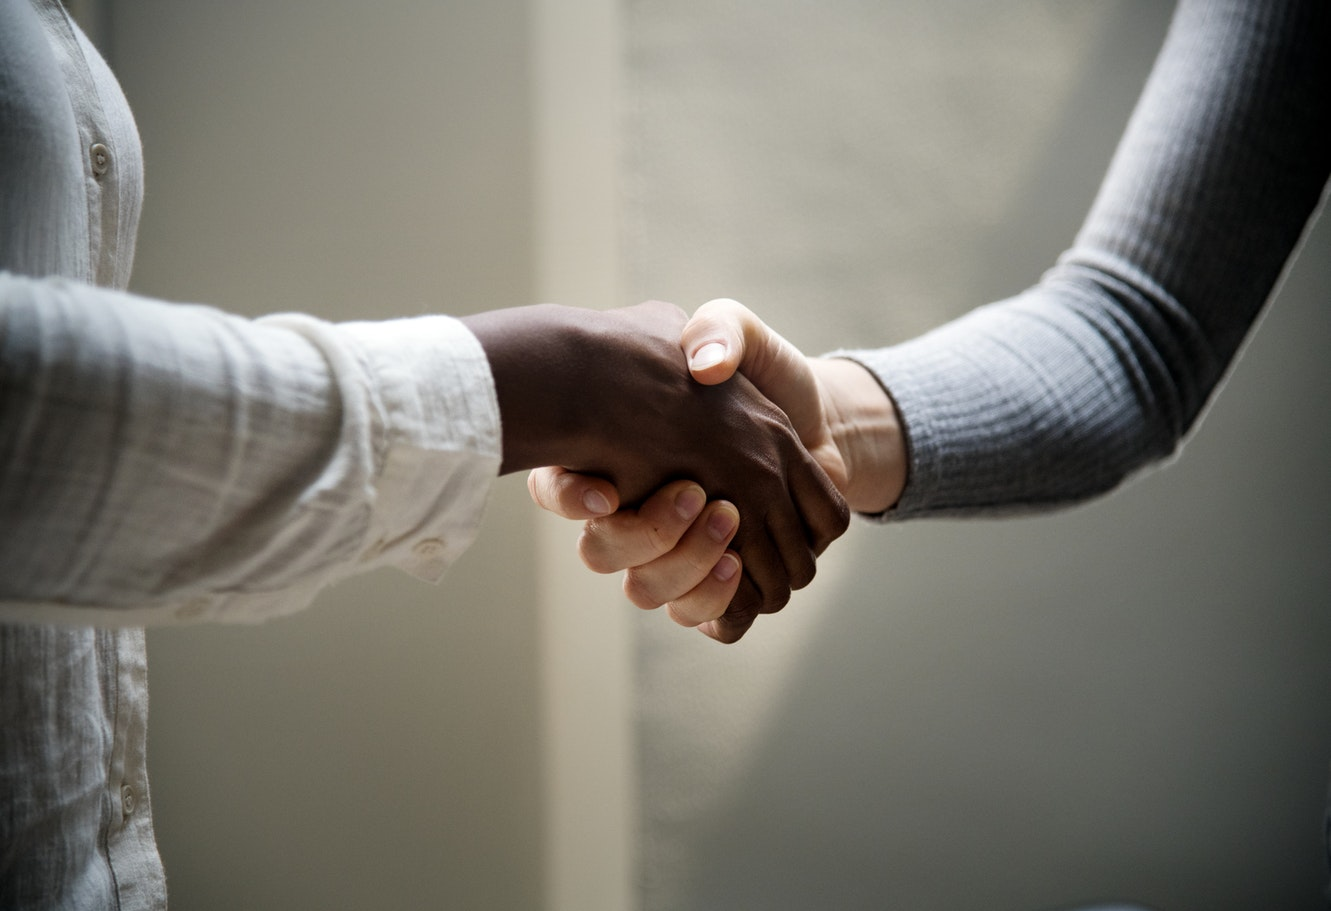 Stock photo of two people shaking hands. Caption: I really, really want an internship